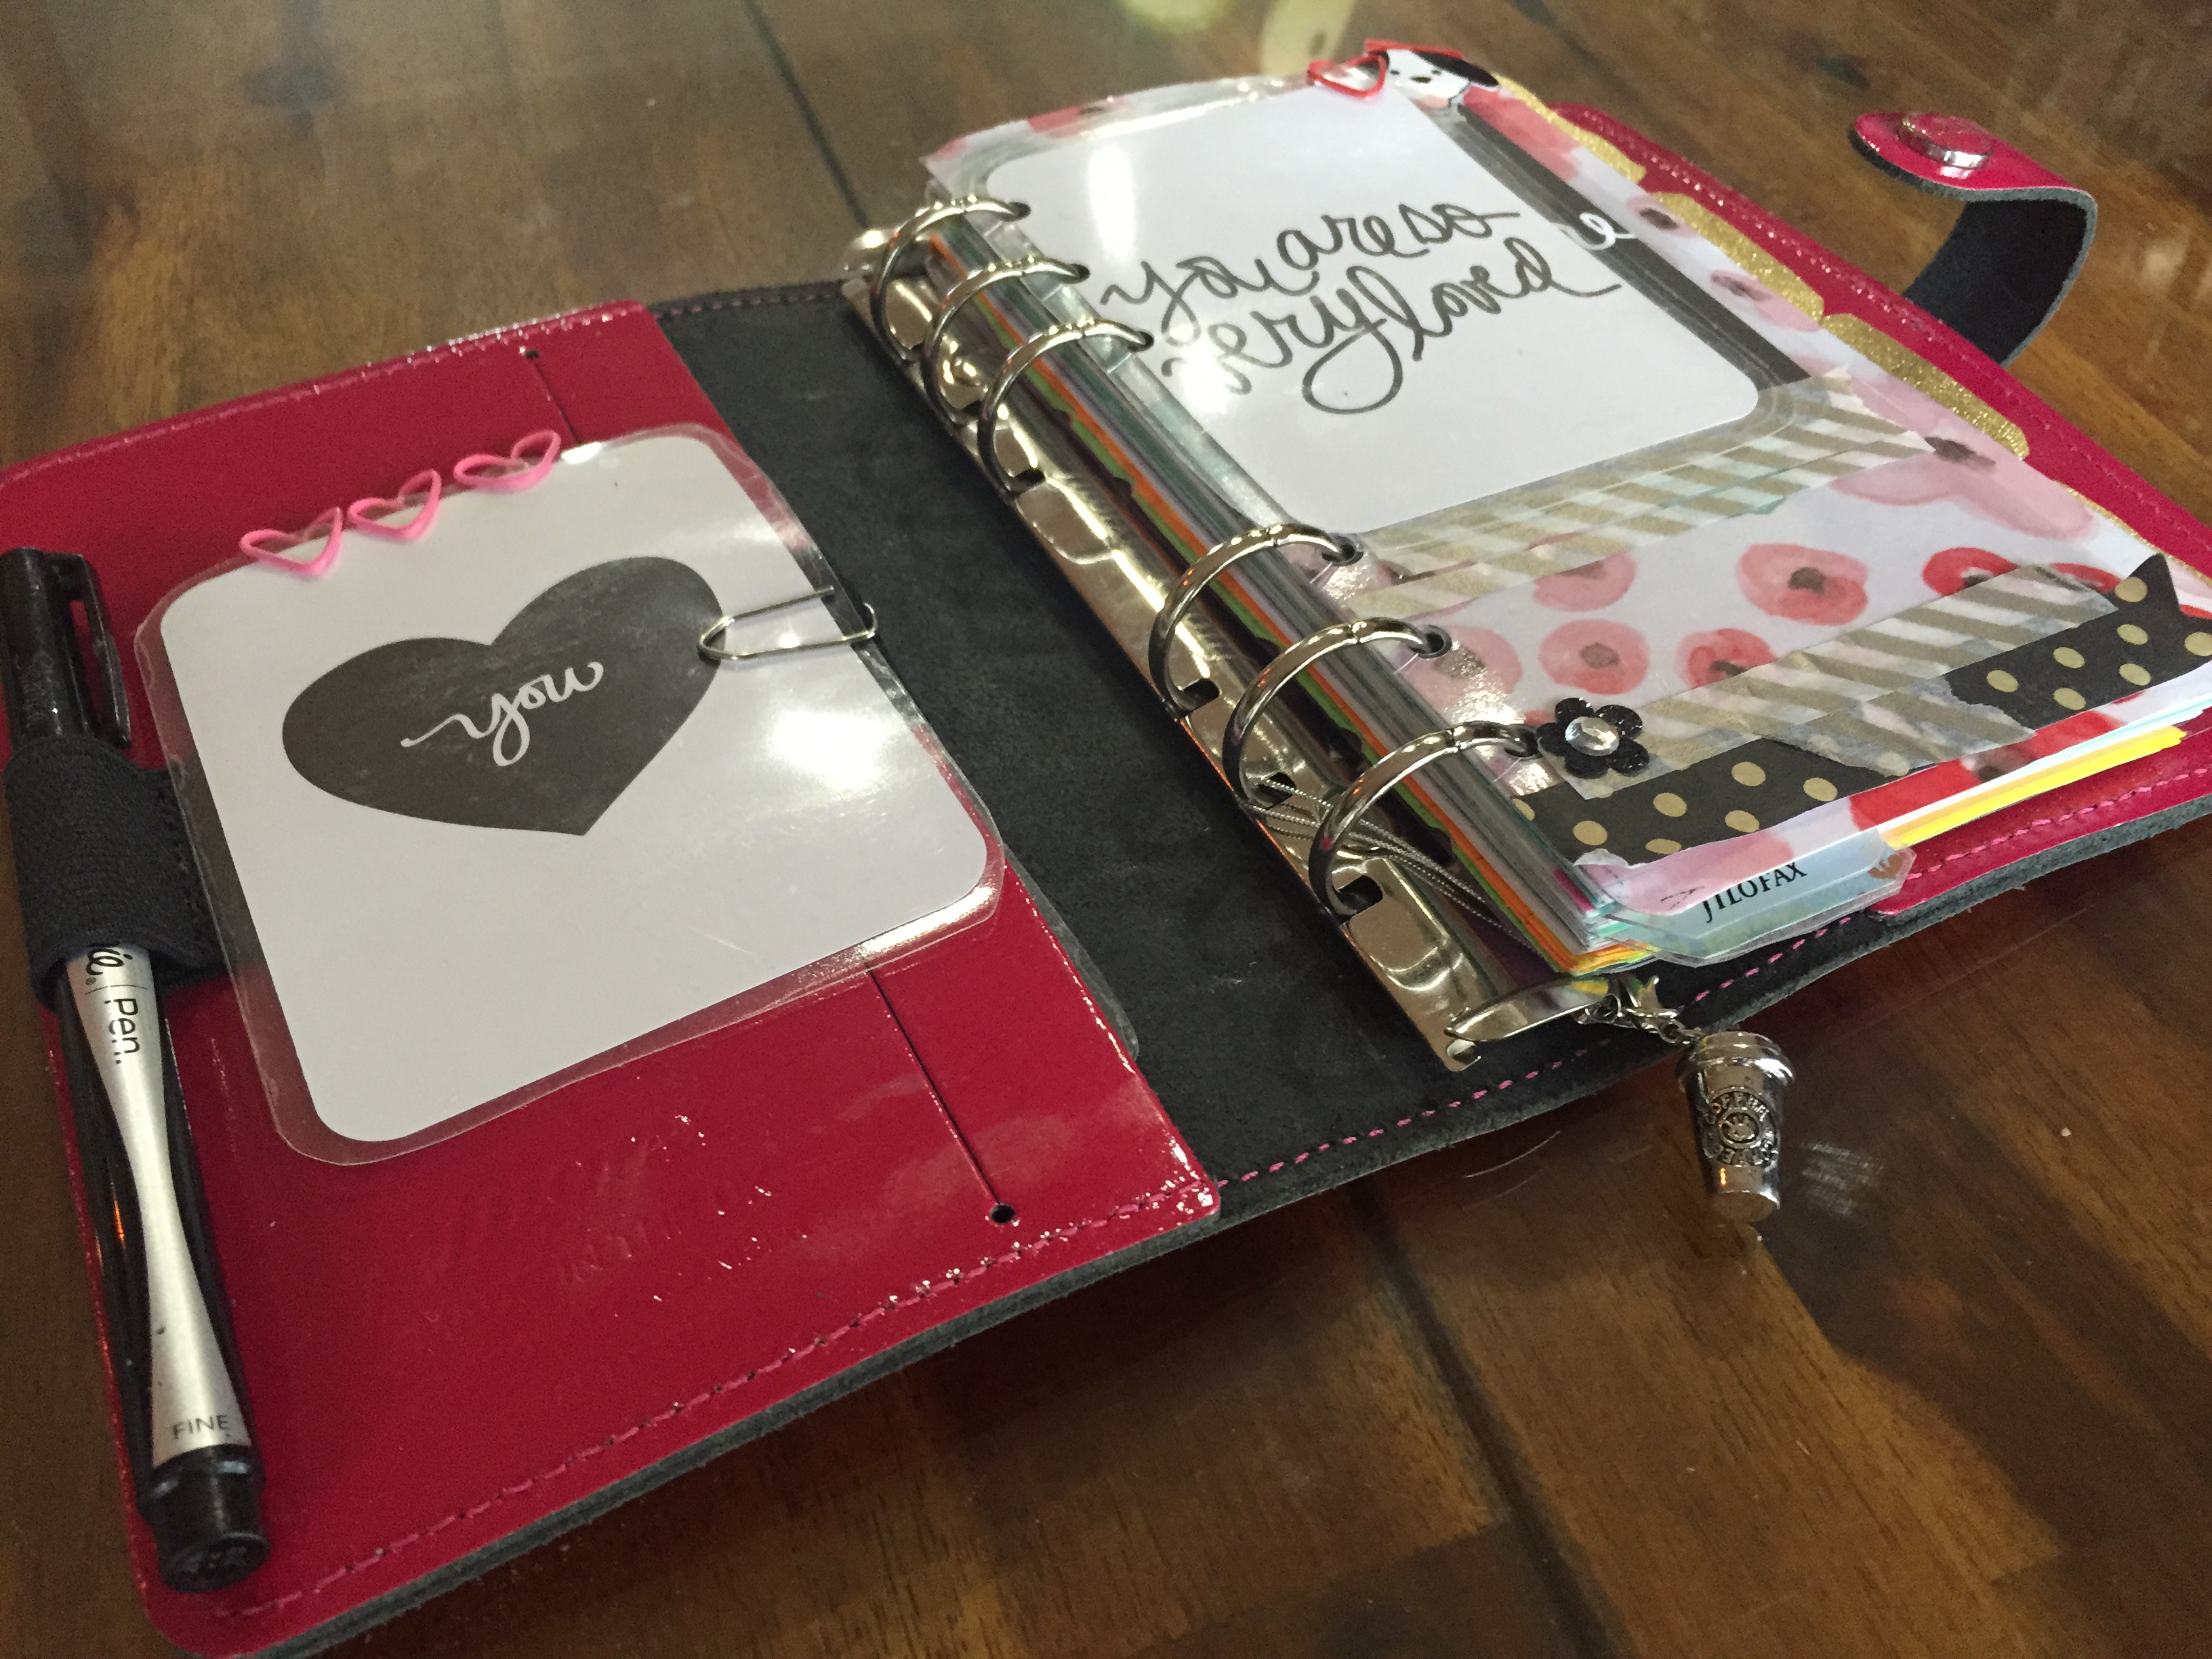 This is how I have decorated the inside of my personal Filofax so far.